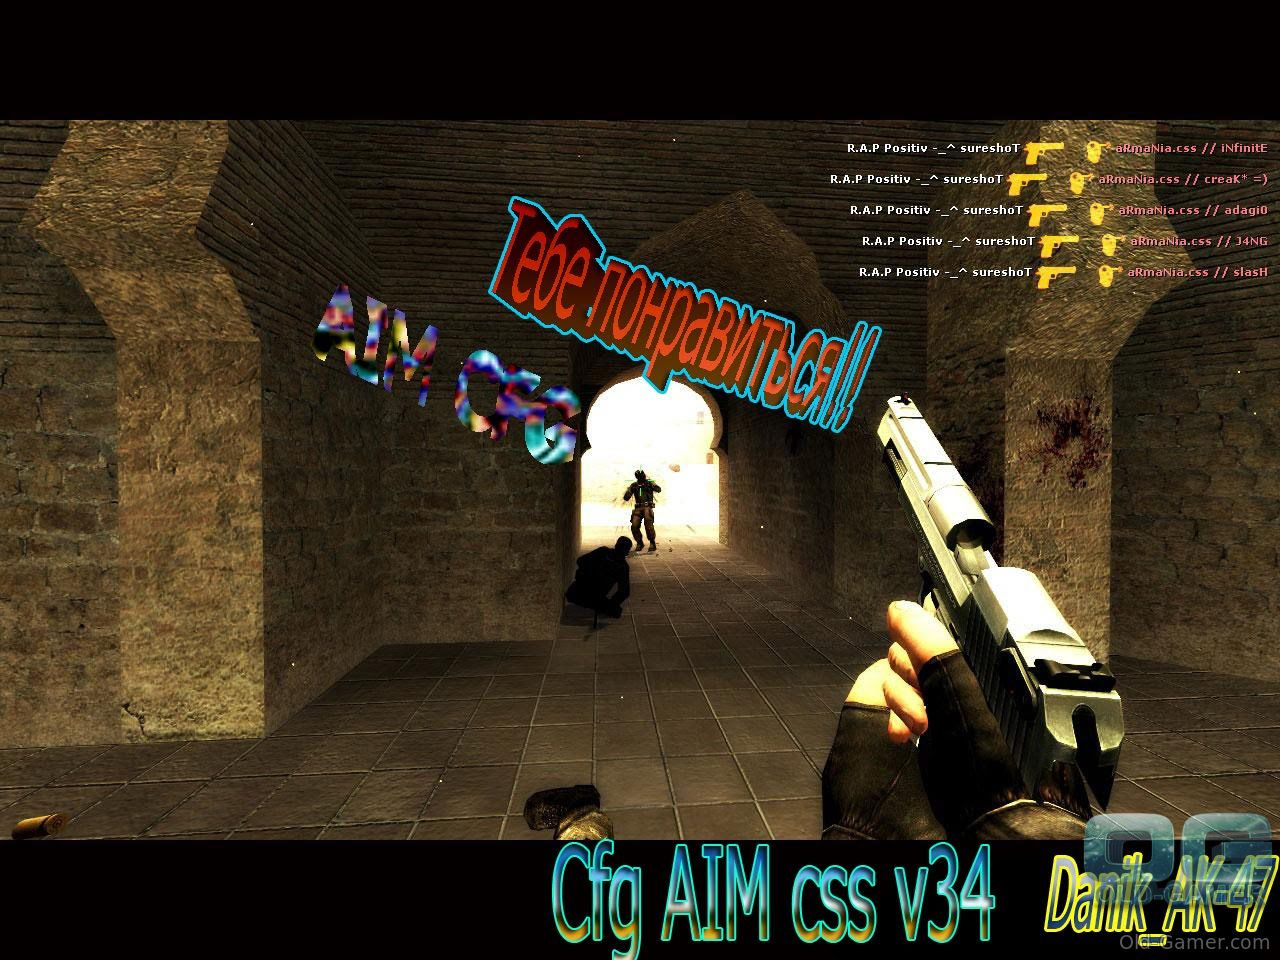 AIM.CFG BY DARKKK KING V2.0